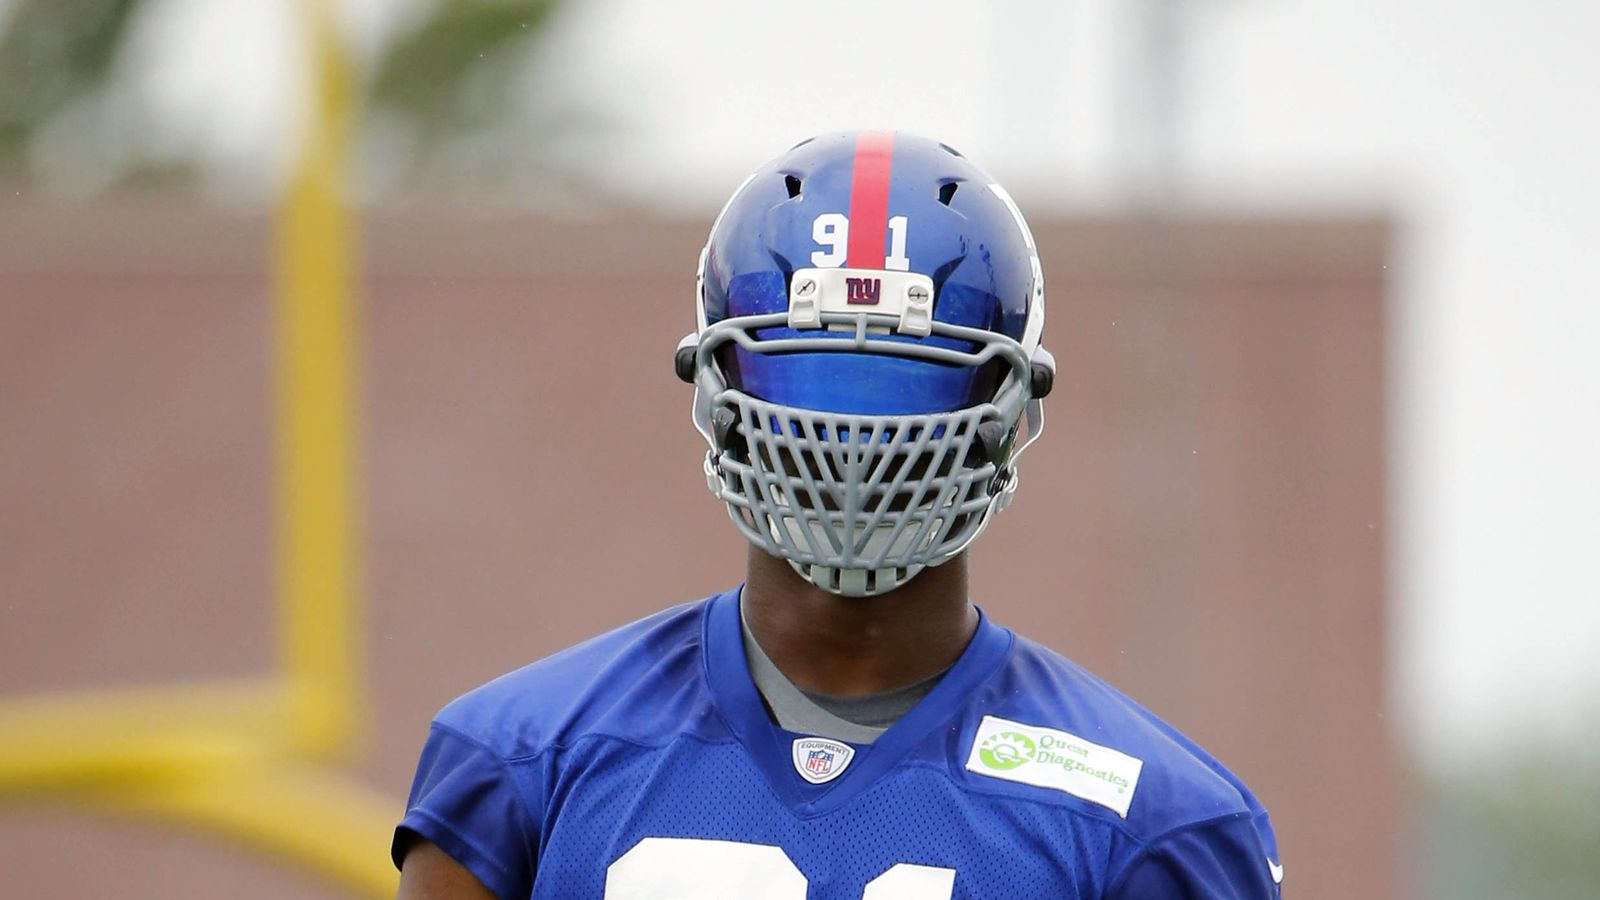 Justin Tuck exempt from NFL's face mask changes - SBNation.com